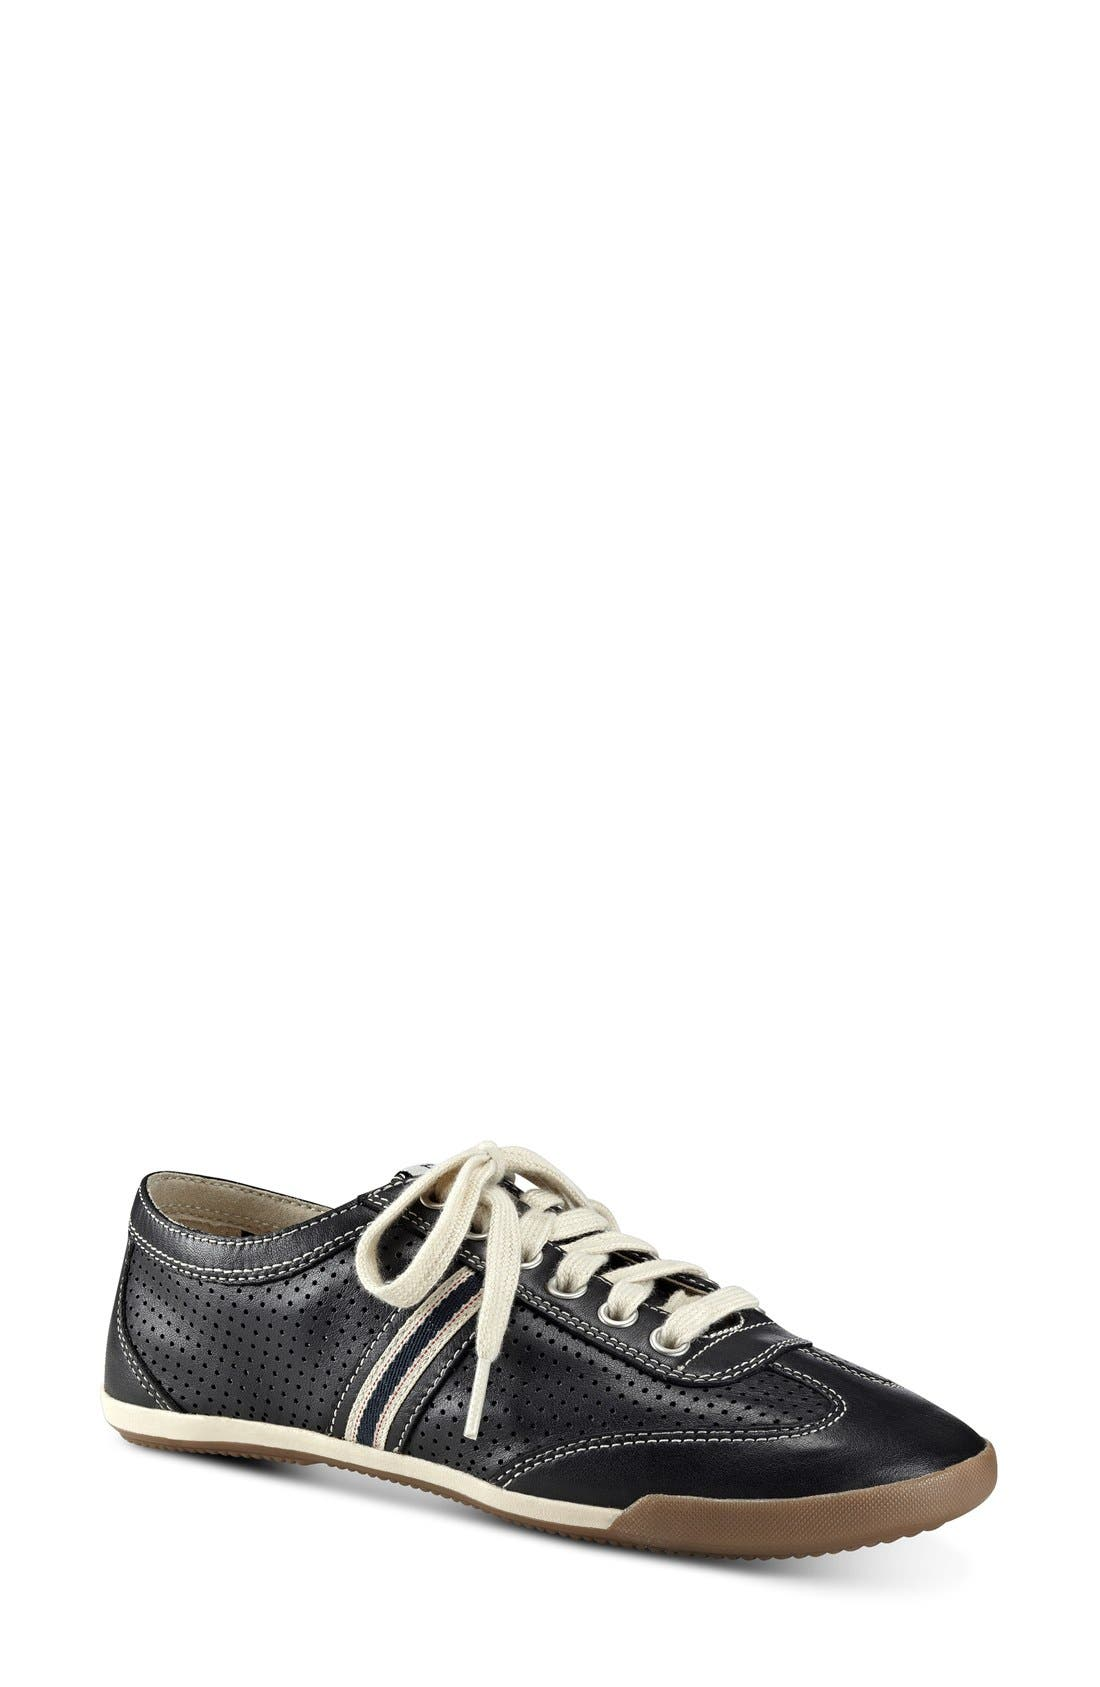 'Escondido' Sneaker,                         Main,                         color, Black Leather